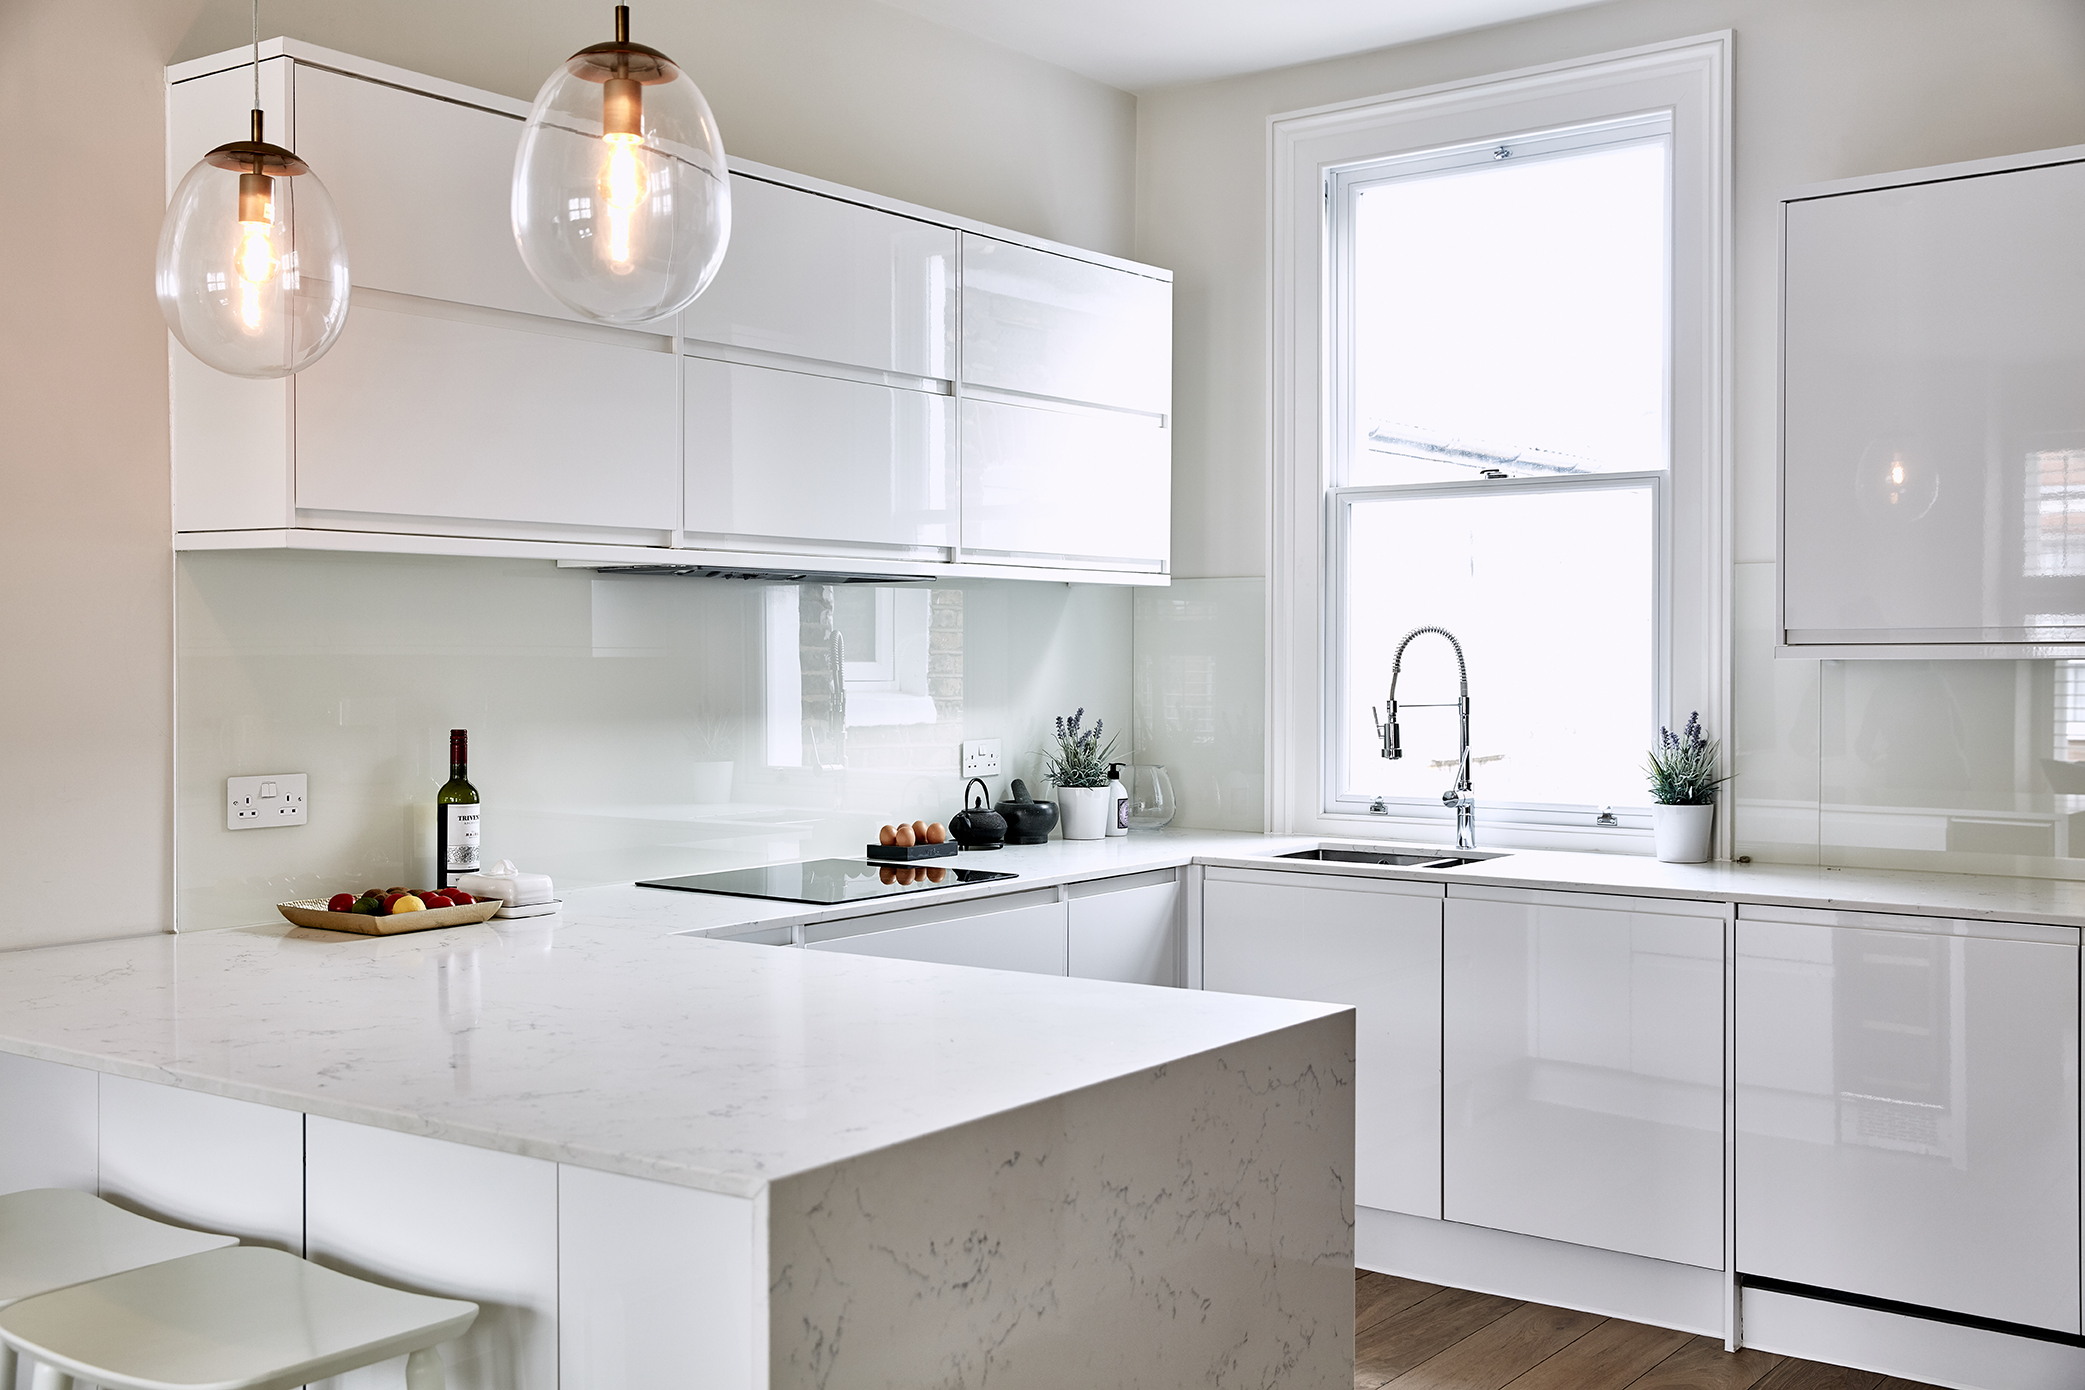 uber contracts  property photography interior photography room kitchen estate.jpg